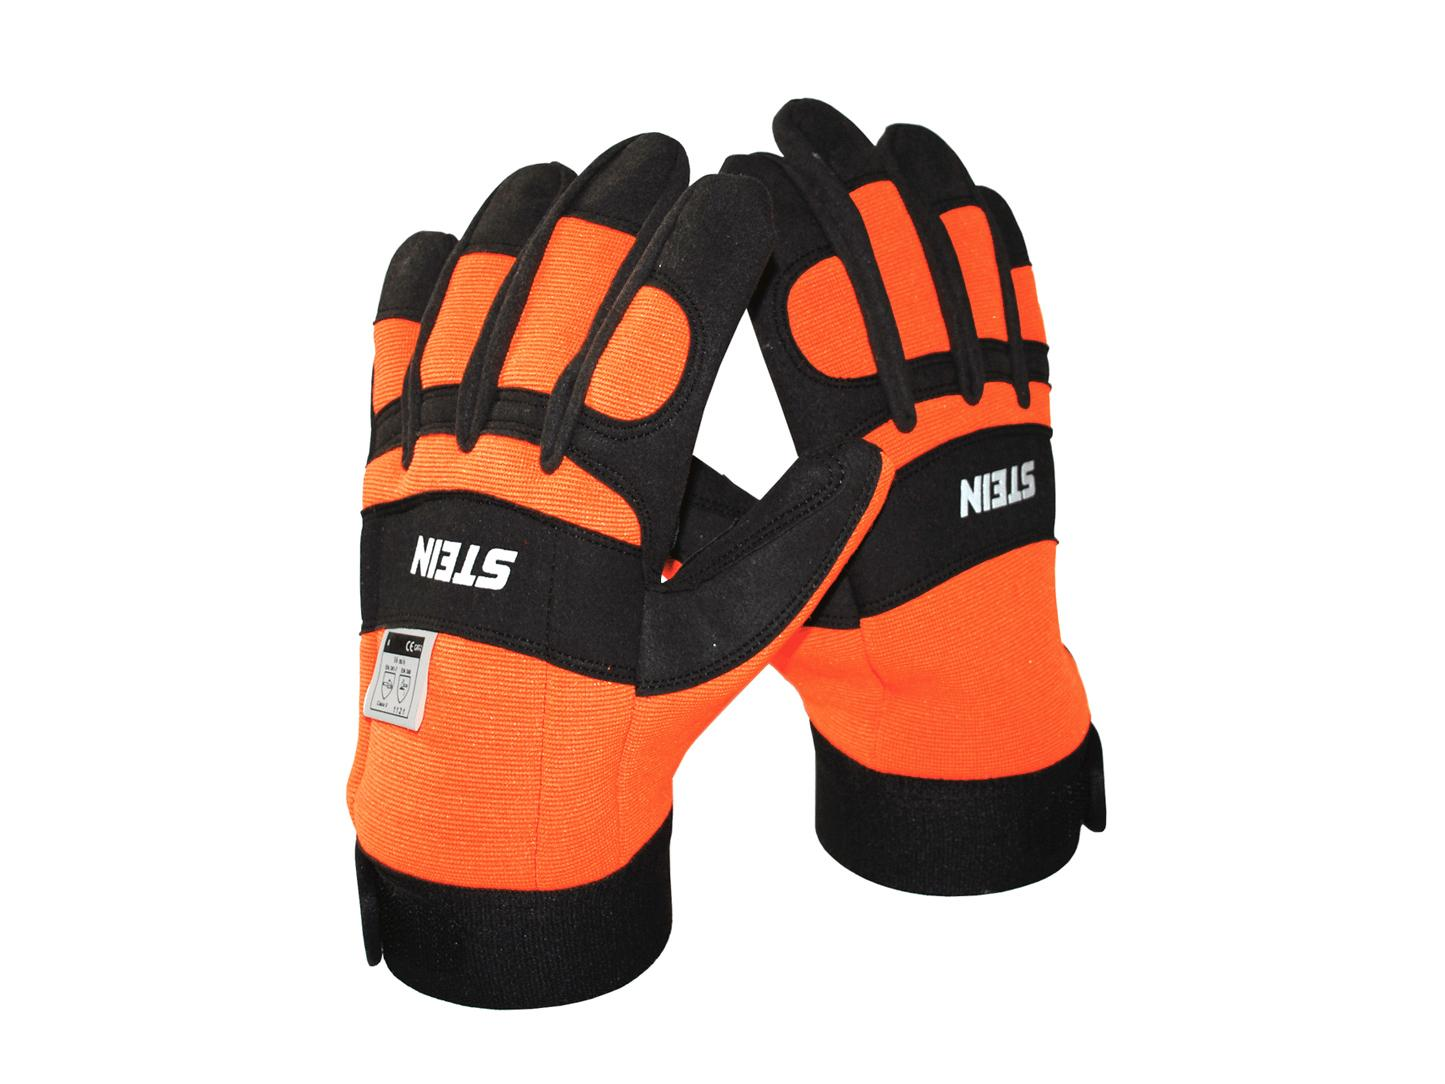 Best gardening gloves that are comfortable, heavy duty and waterproof